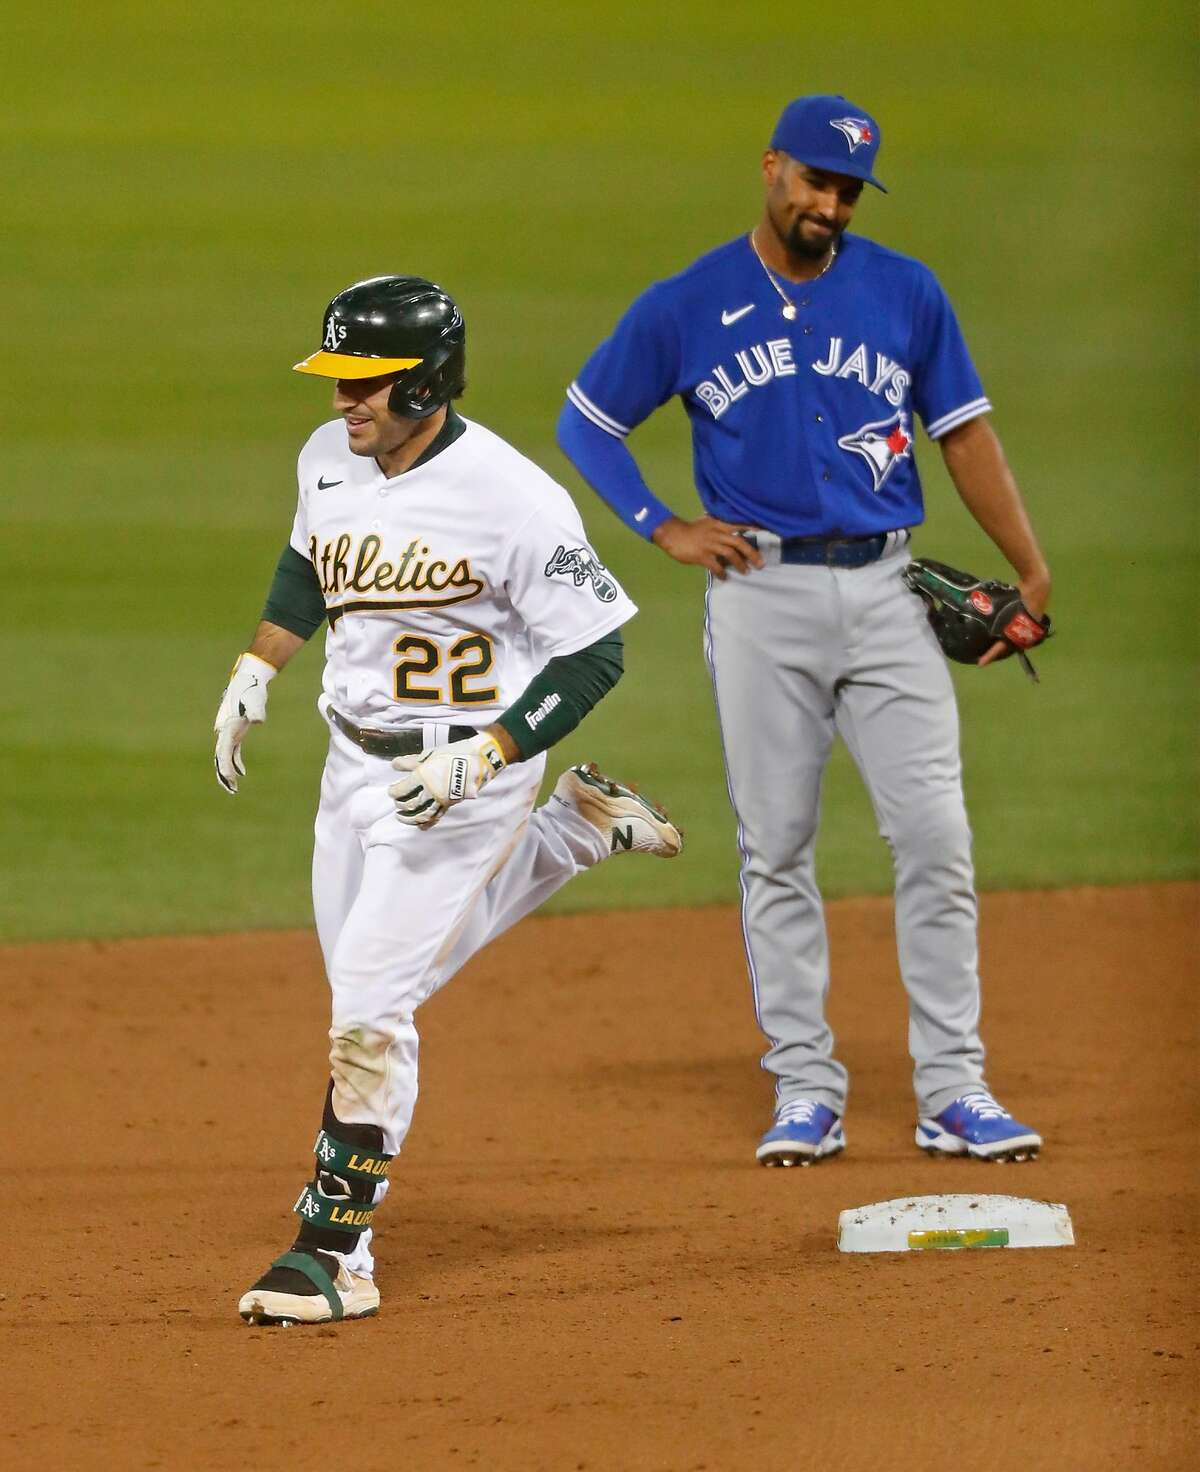 The A's Ramón Laureano passes former teammate Marcus Semien after his two-run homer.